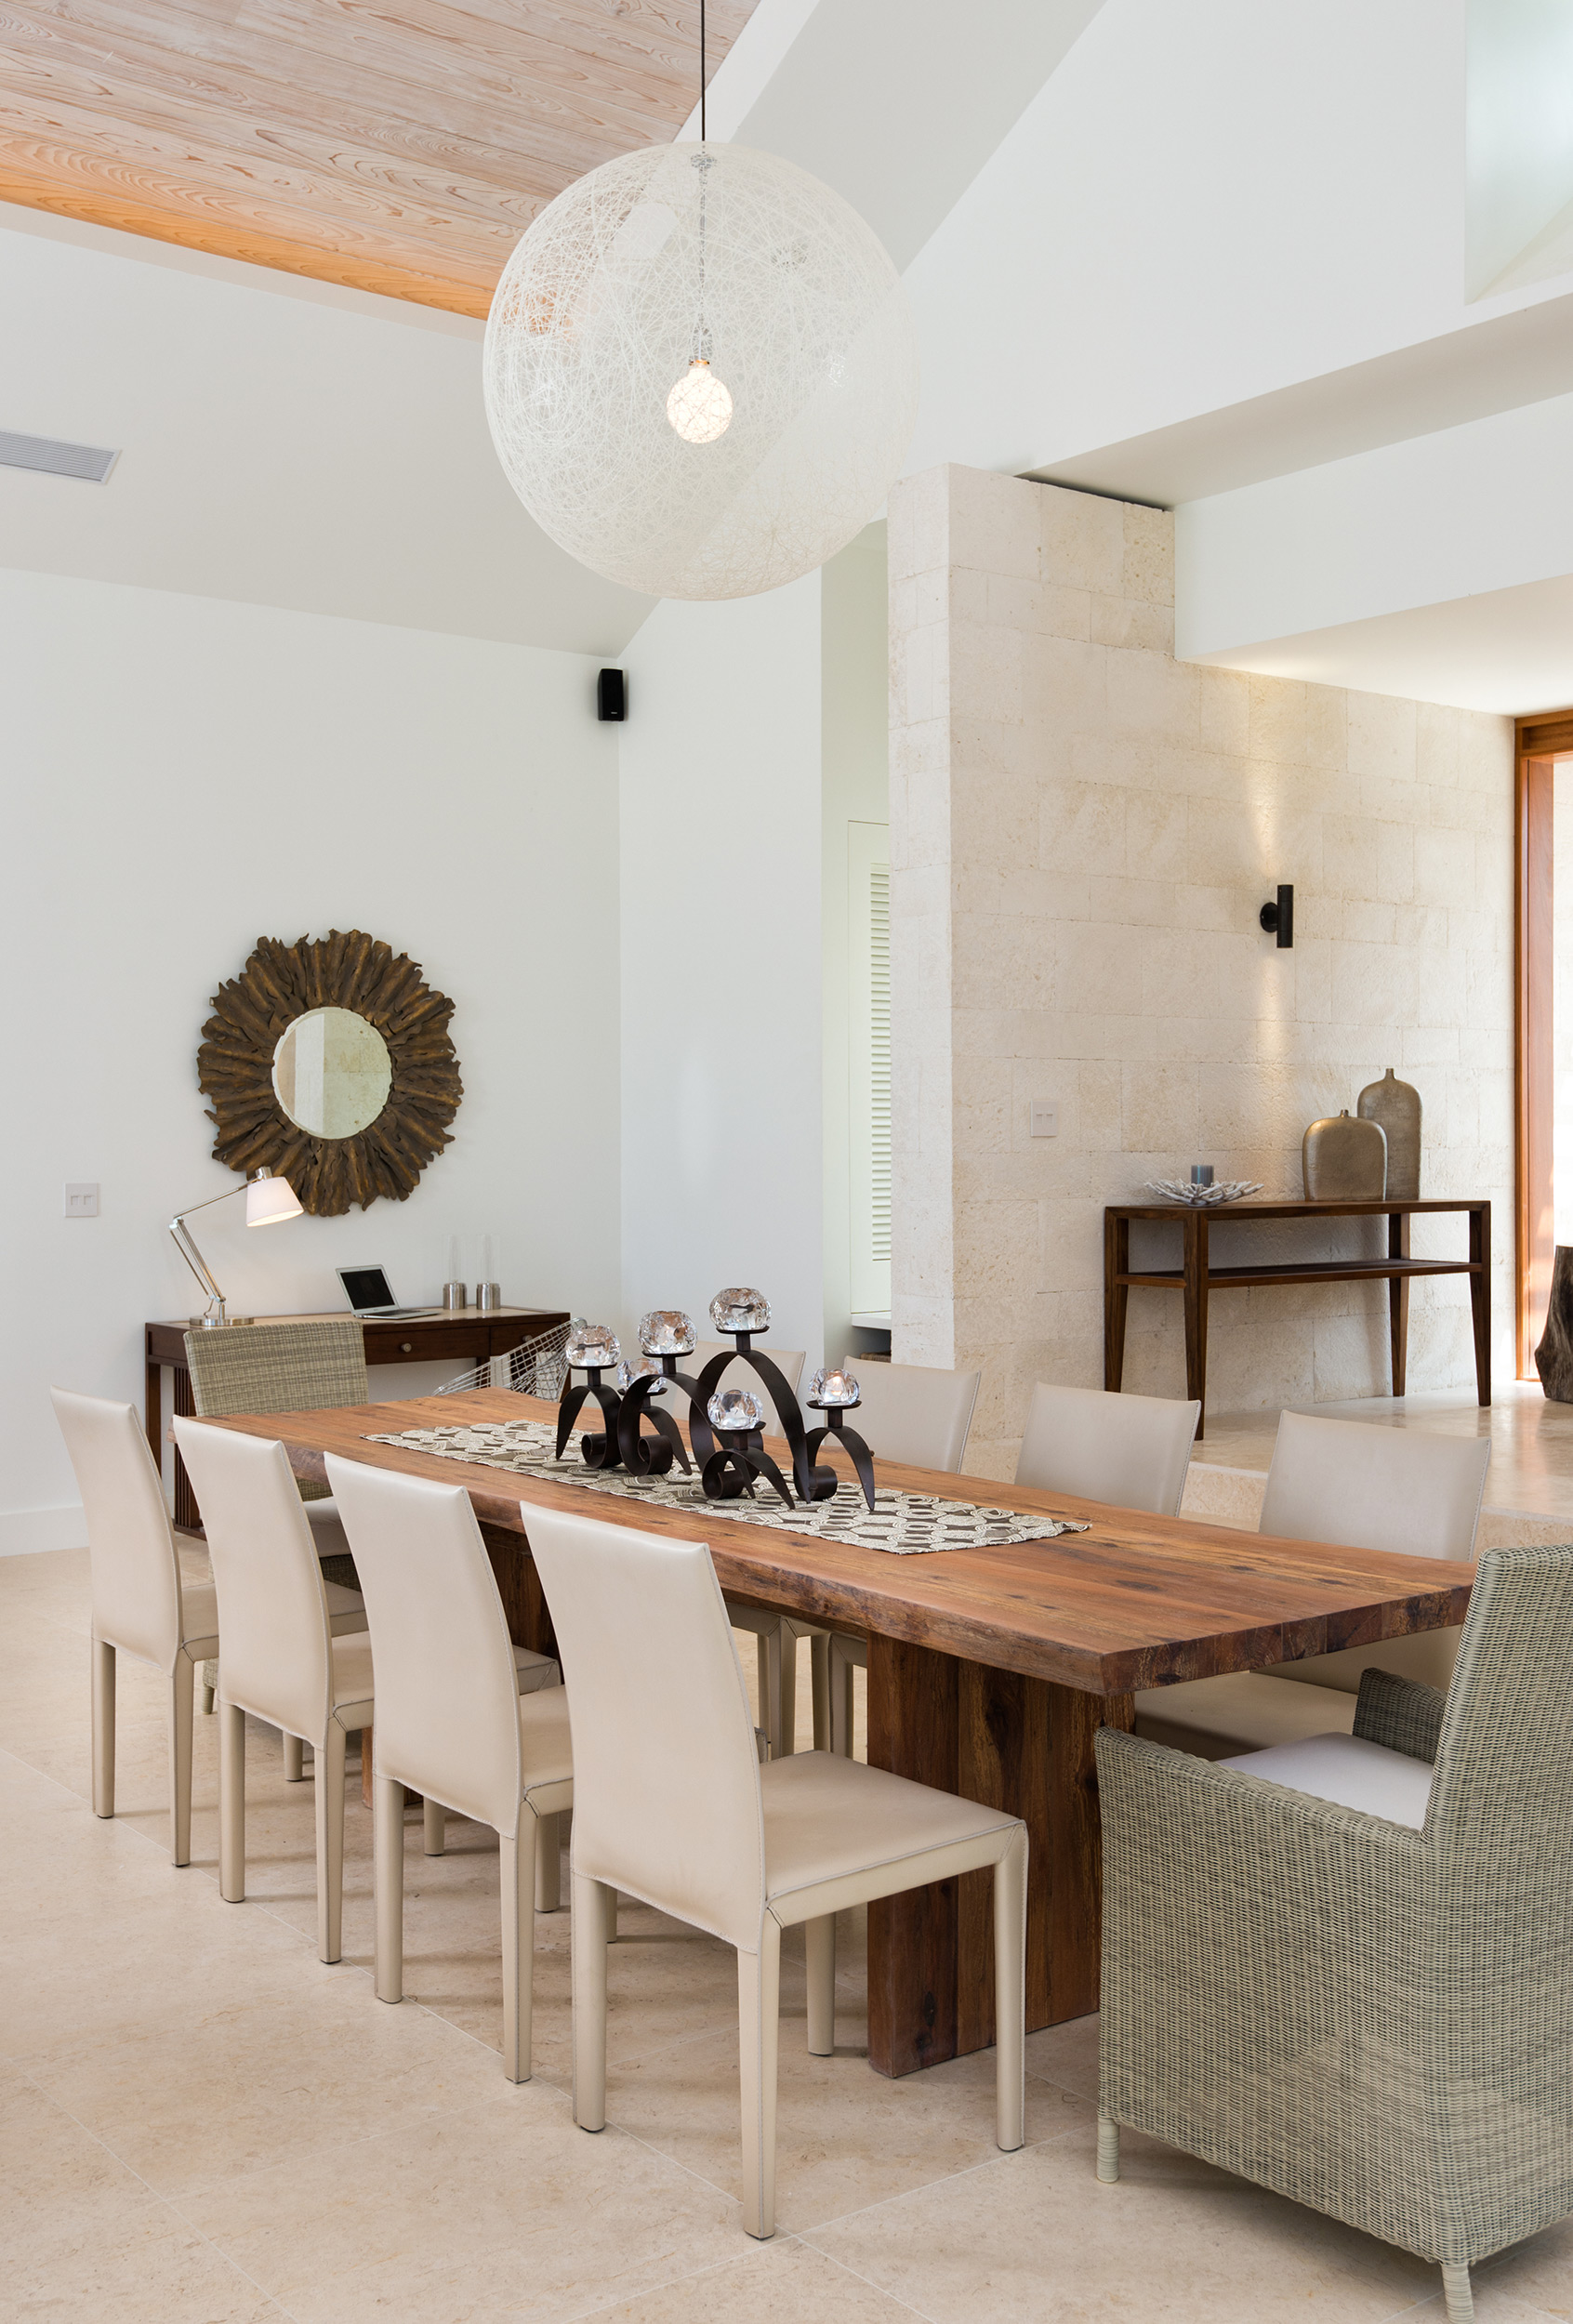 Castaway - view of the dining area